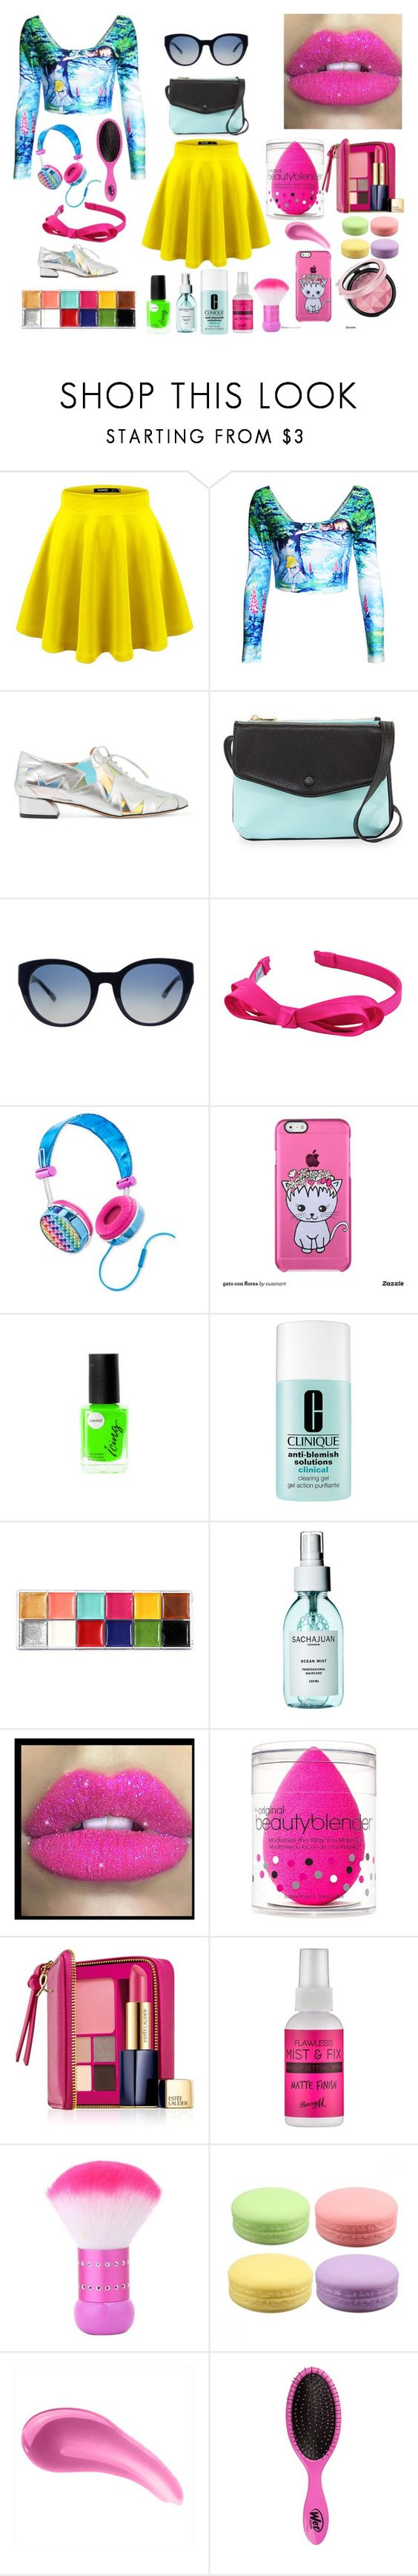 """""""#color"""" by adan2001 ❤ liked on Polyvore featuring Charlotte Olympia, Neiman Marcus, Tory Burch, L. Erickson, Lisa Frank, Clinique, Sachajuan, Glitter Pink, beautyblender and Estée Lauder"""